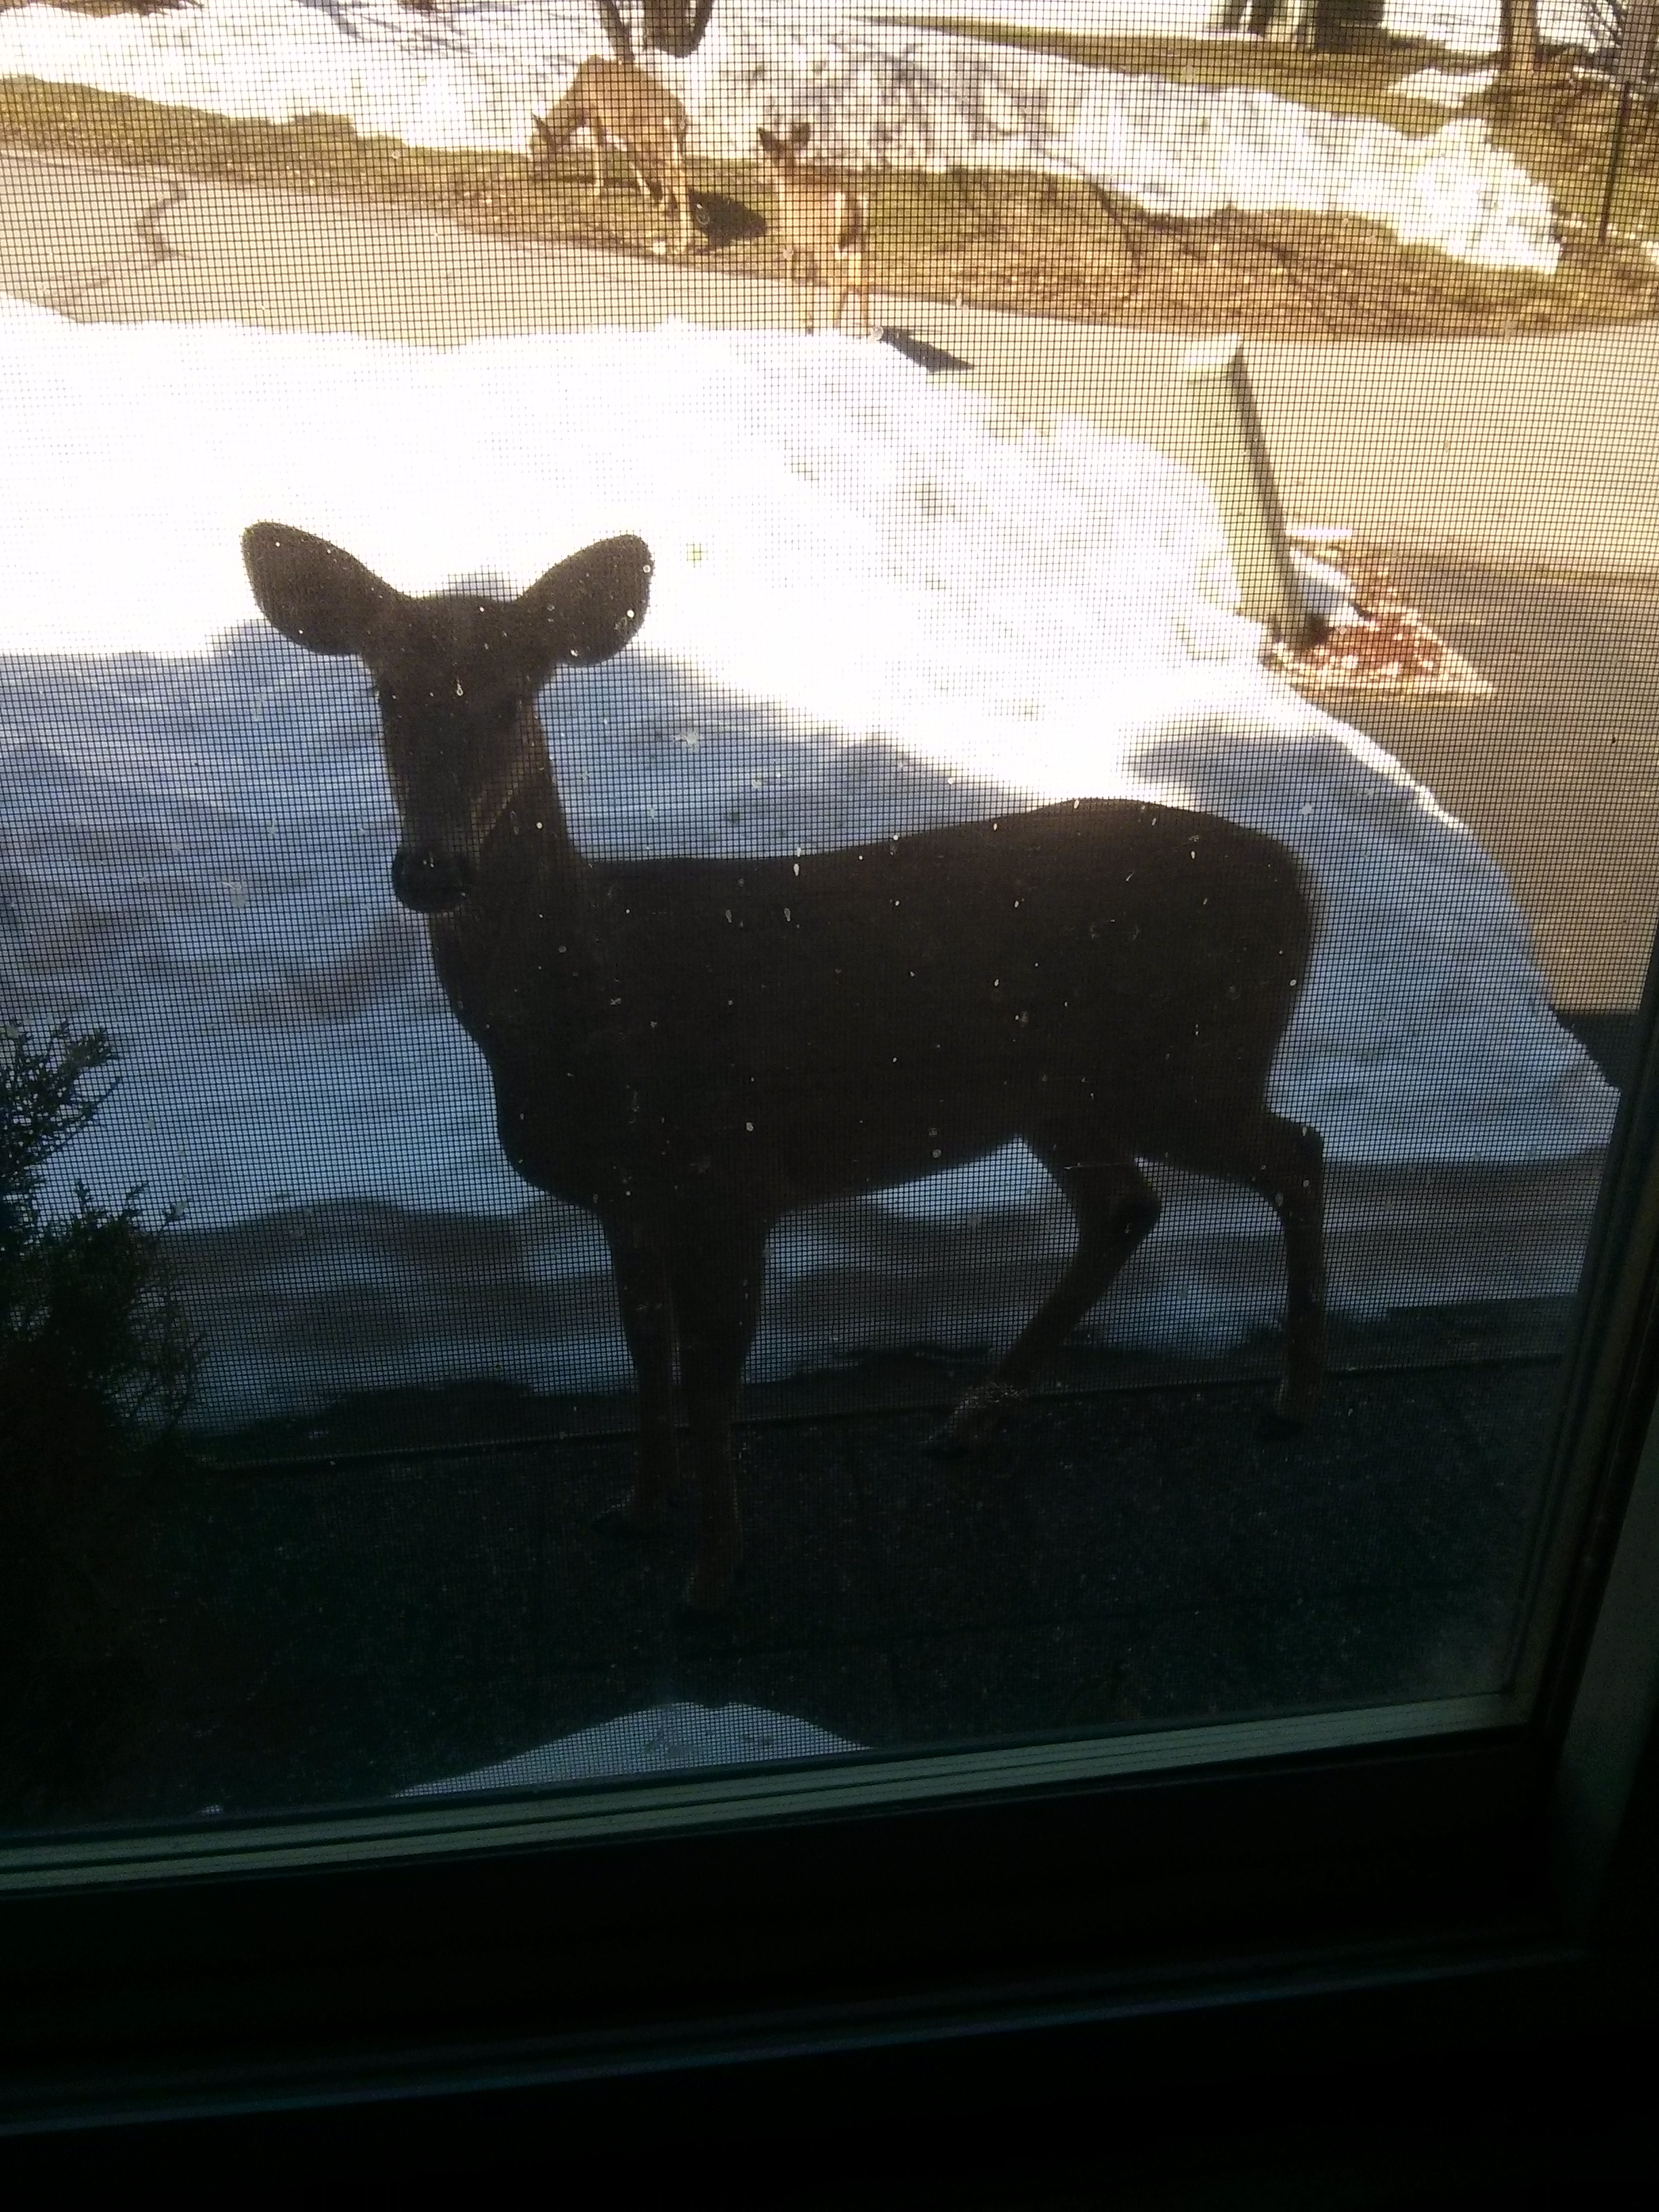 deer in snow seen though the window screen